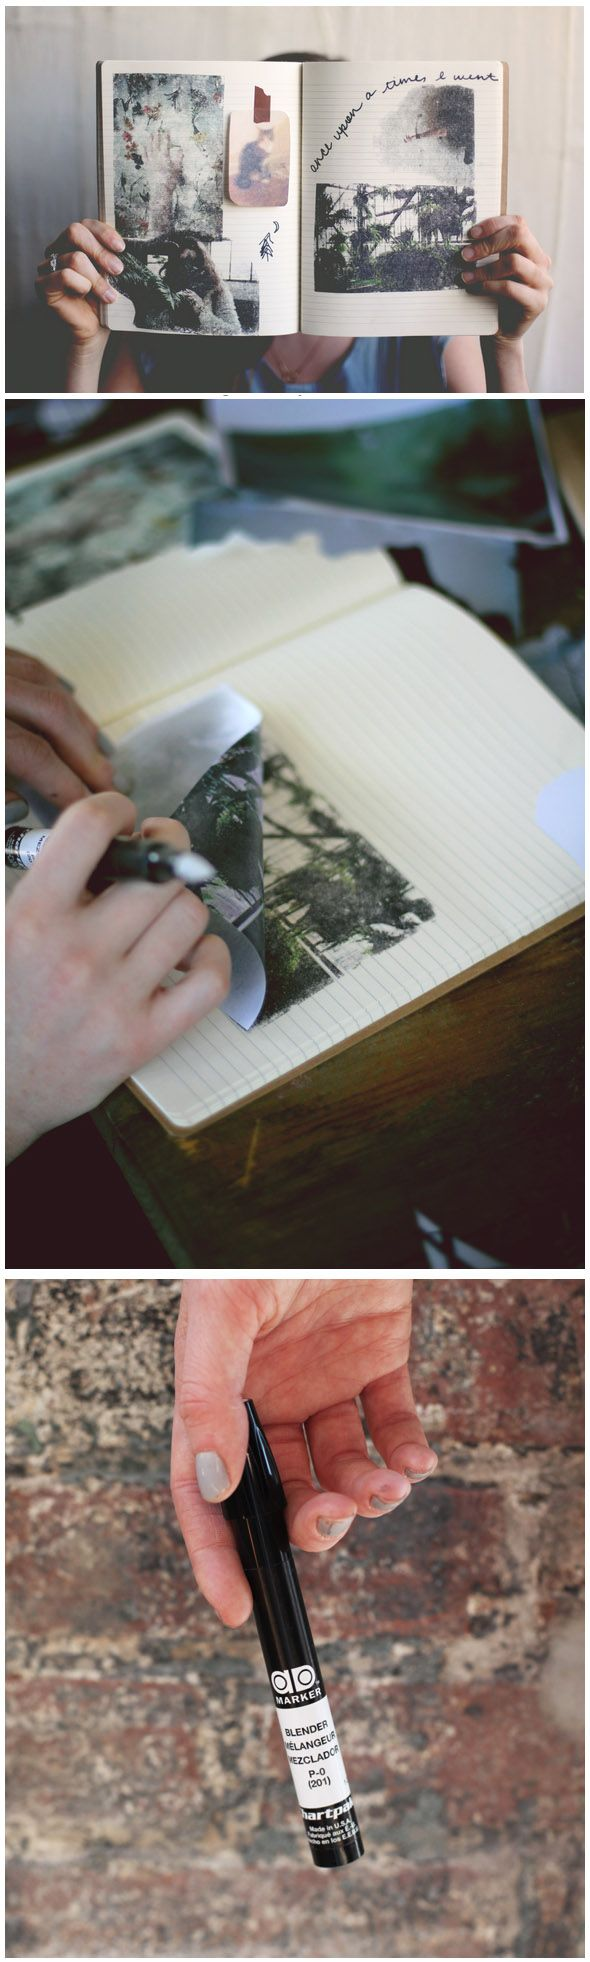 Instant Photo Transfers With Blender Pens // must photo copy with laser-printed image rather than an inkjet-printed image